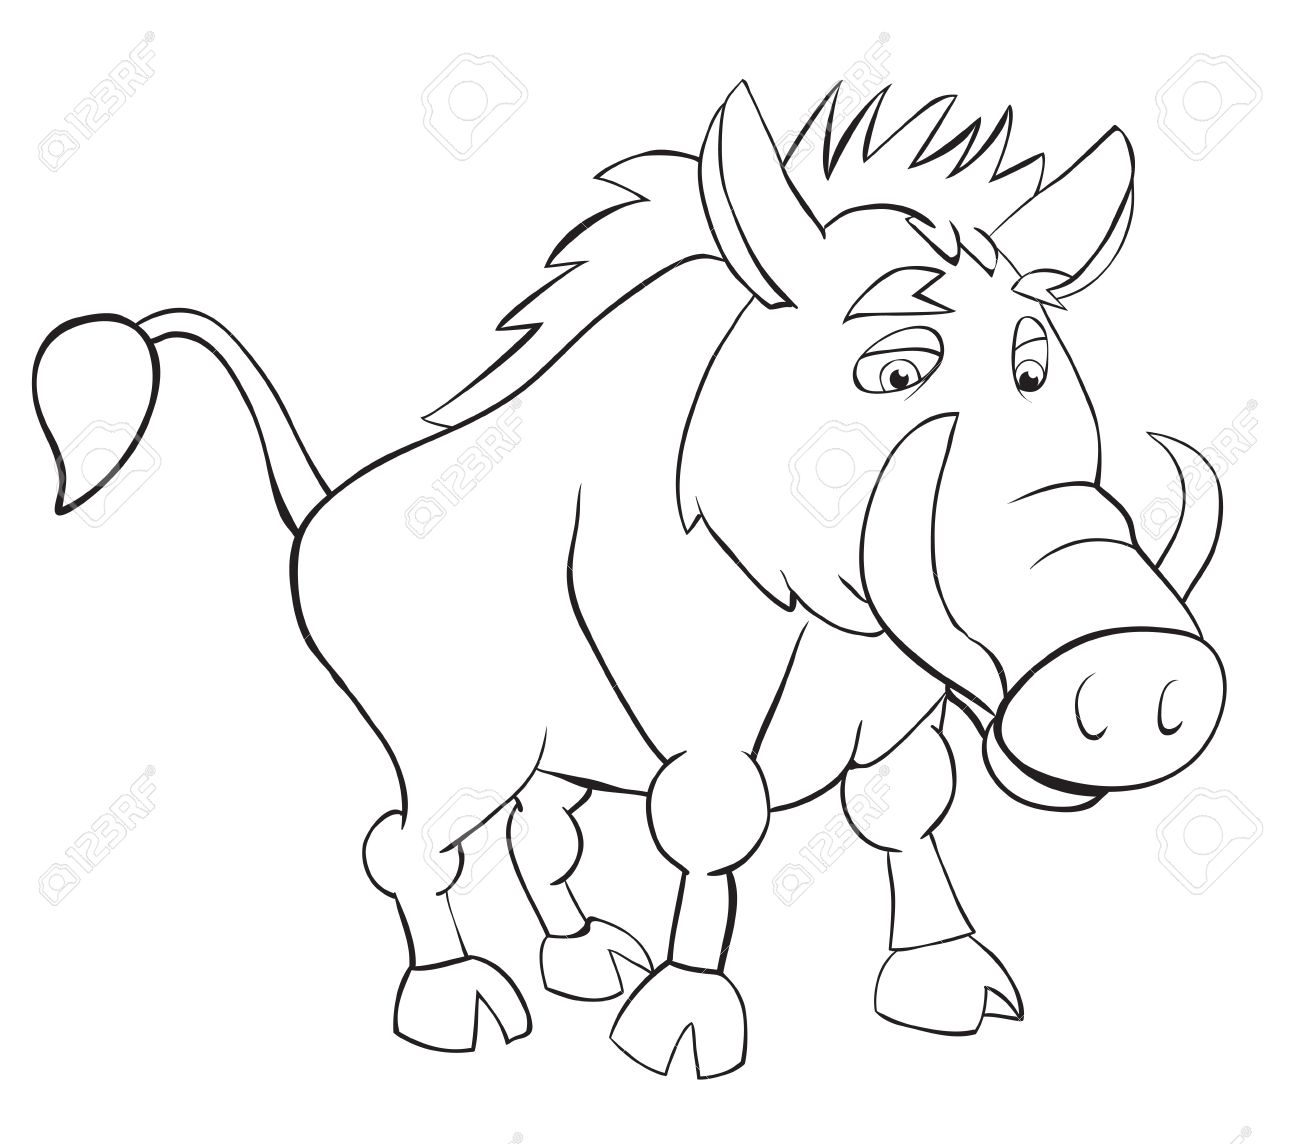 1300x1144 Fan Wild Boar. Outline Drawing Royalty Free Cliparts, Vectors,